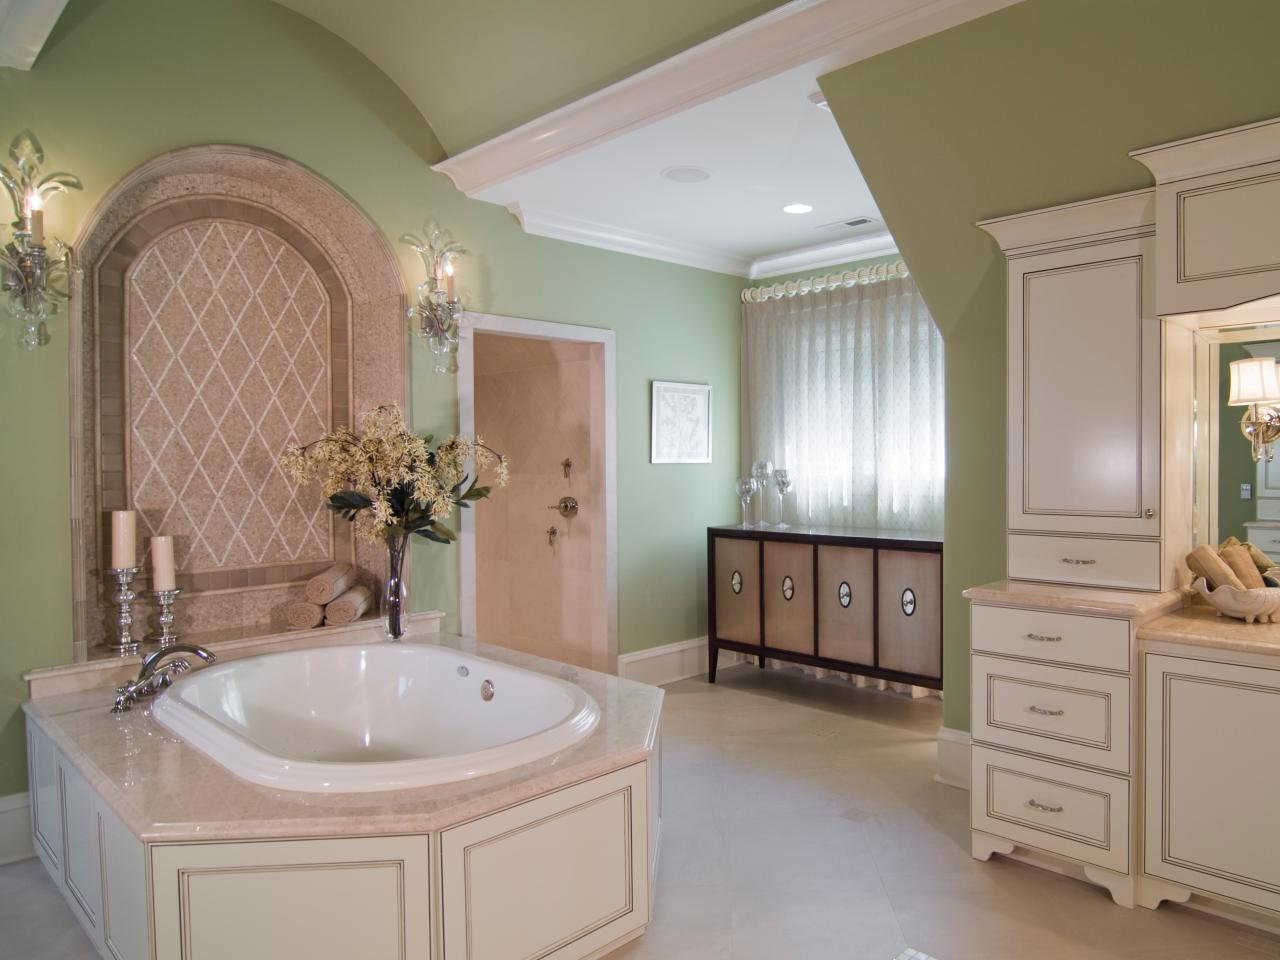 How to improve master bathroom designs in better way for Bathroom interiors designs